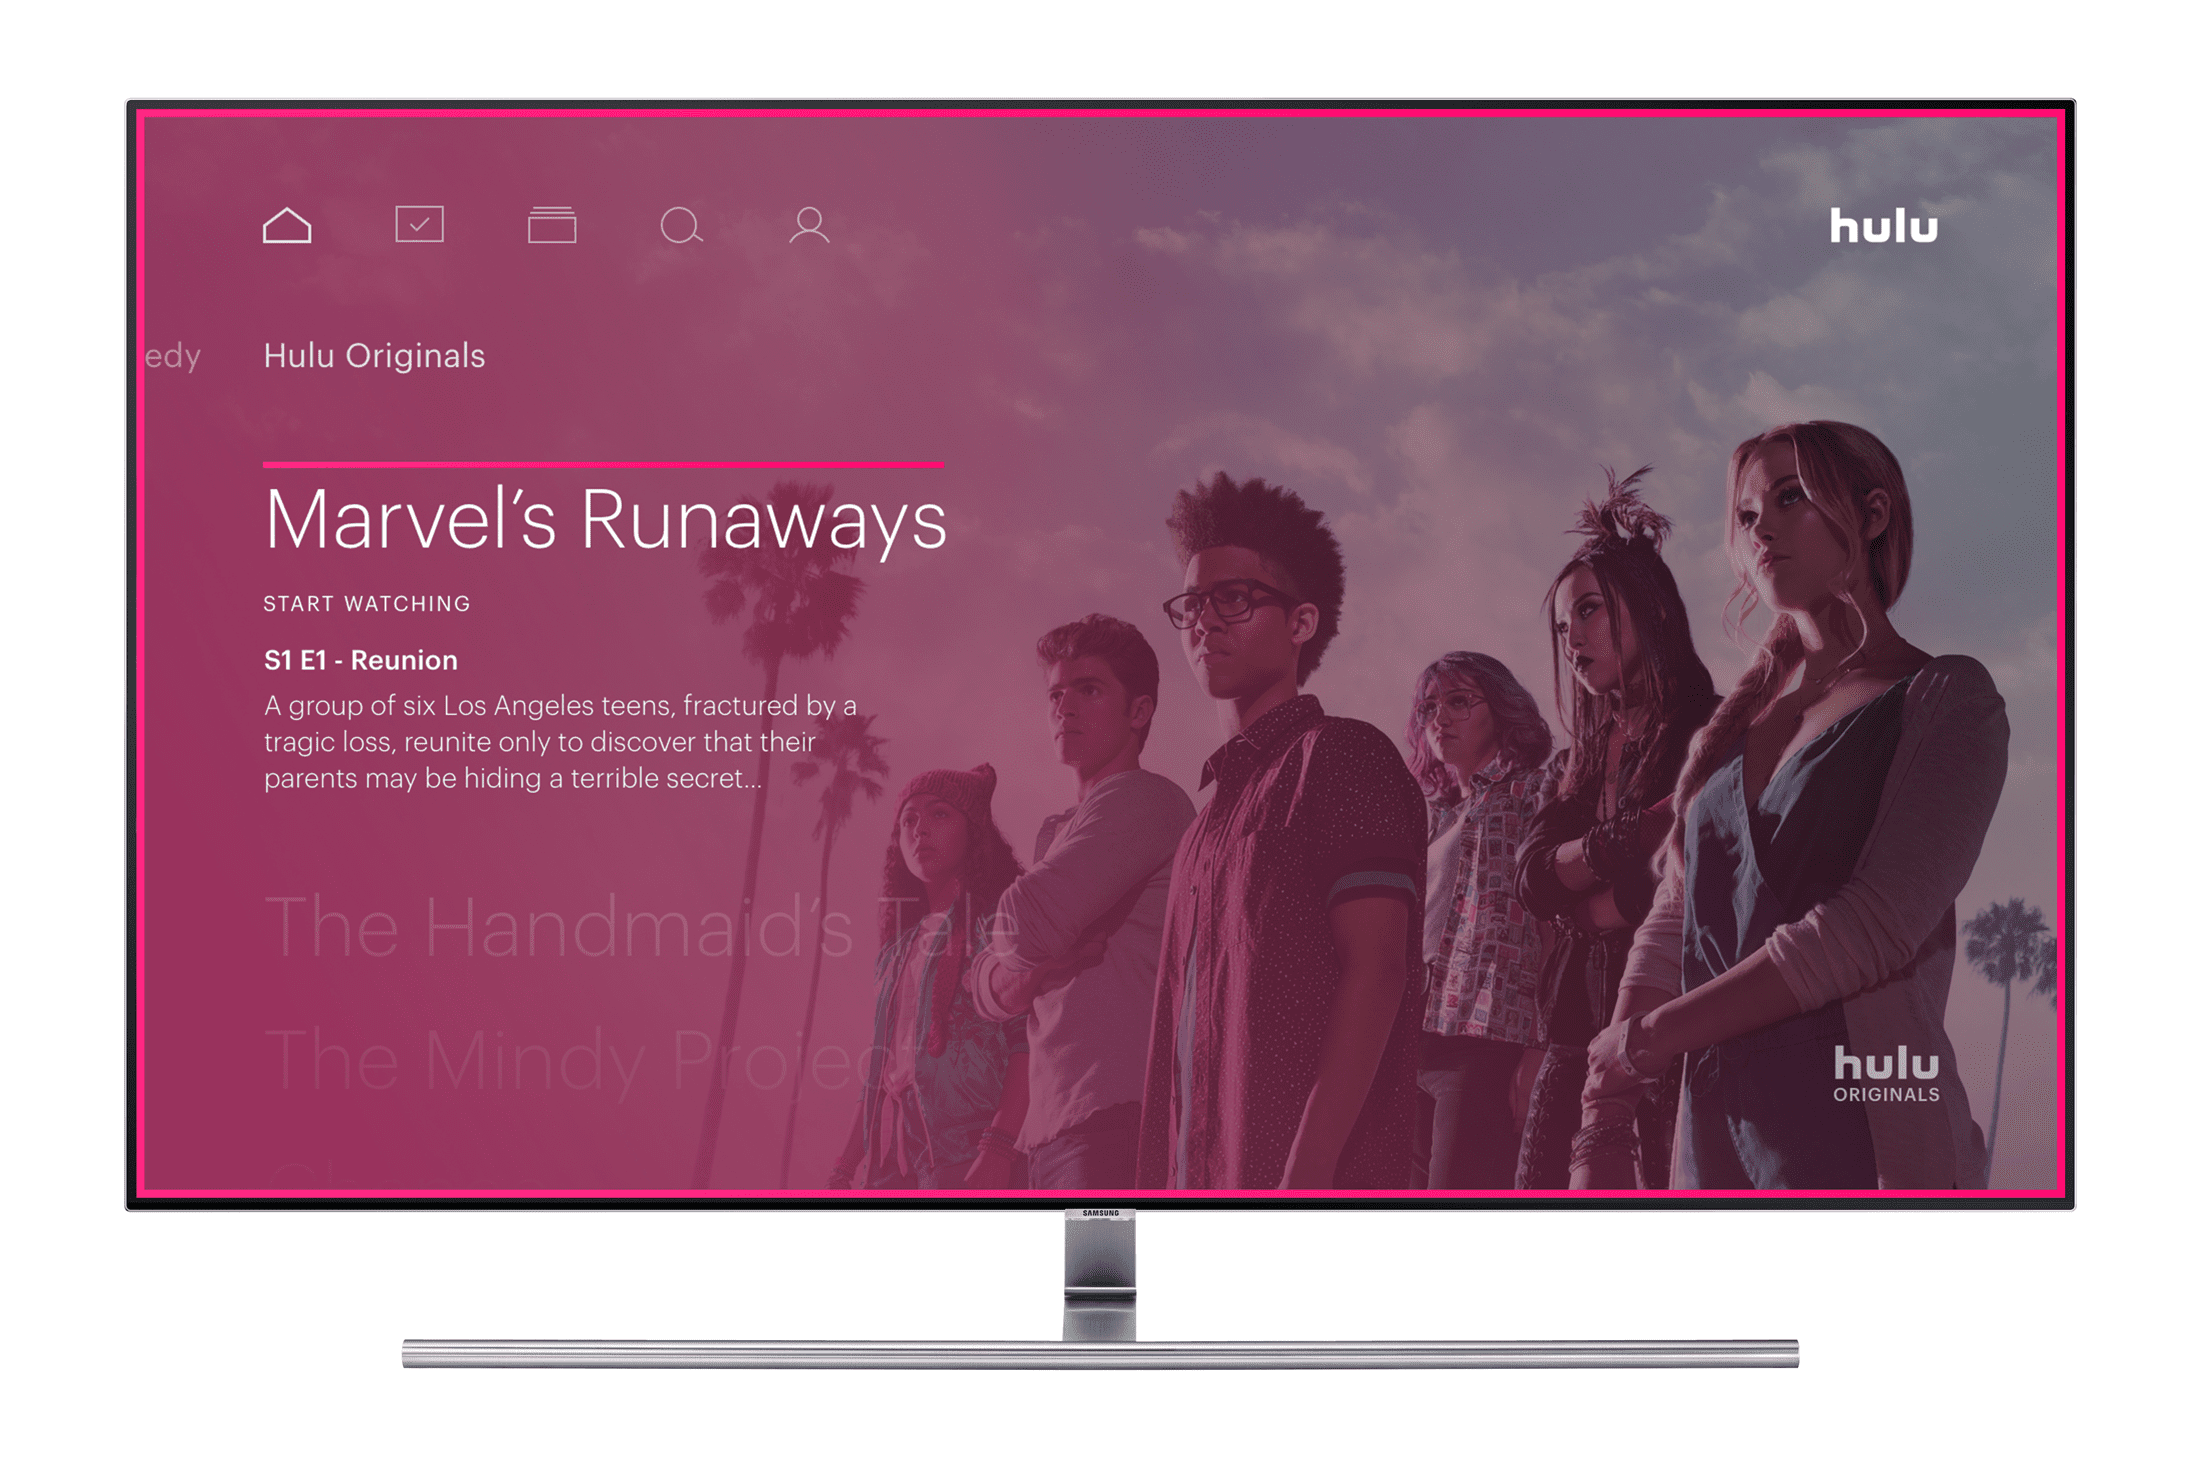 How to Watch Hulu on Your TV